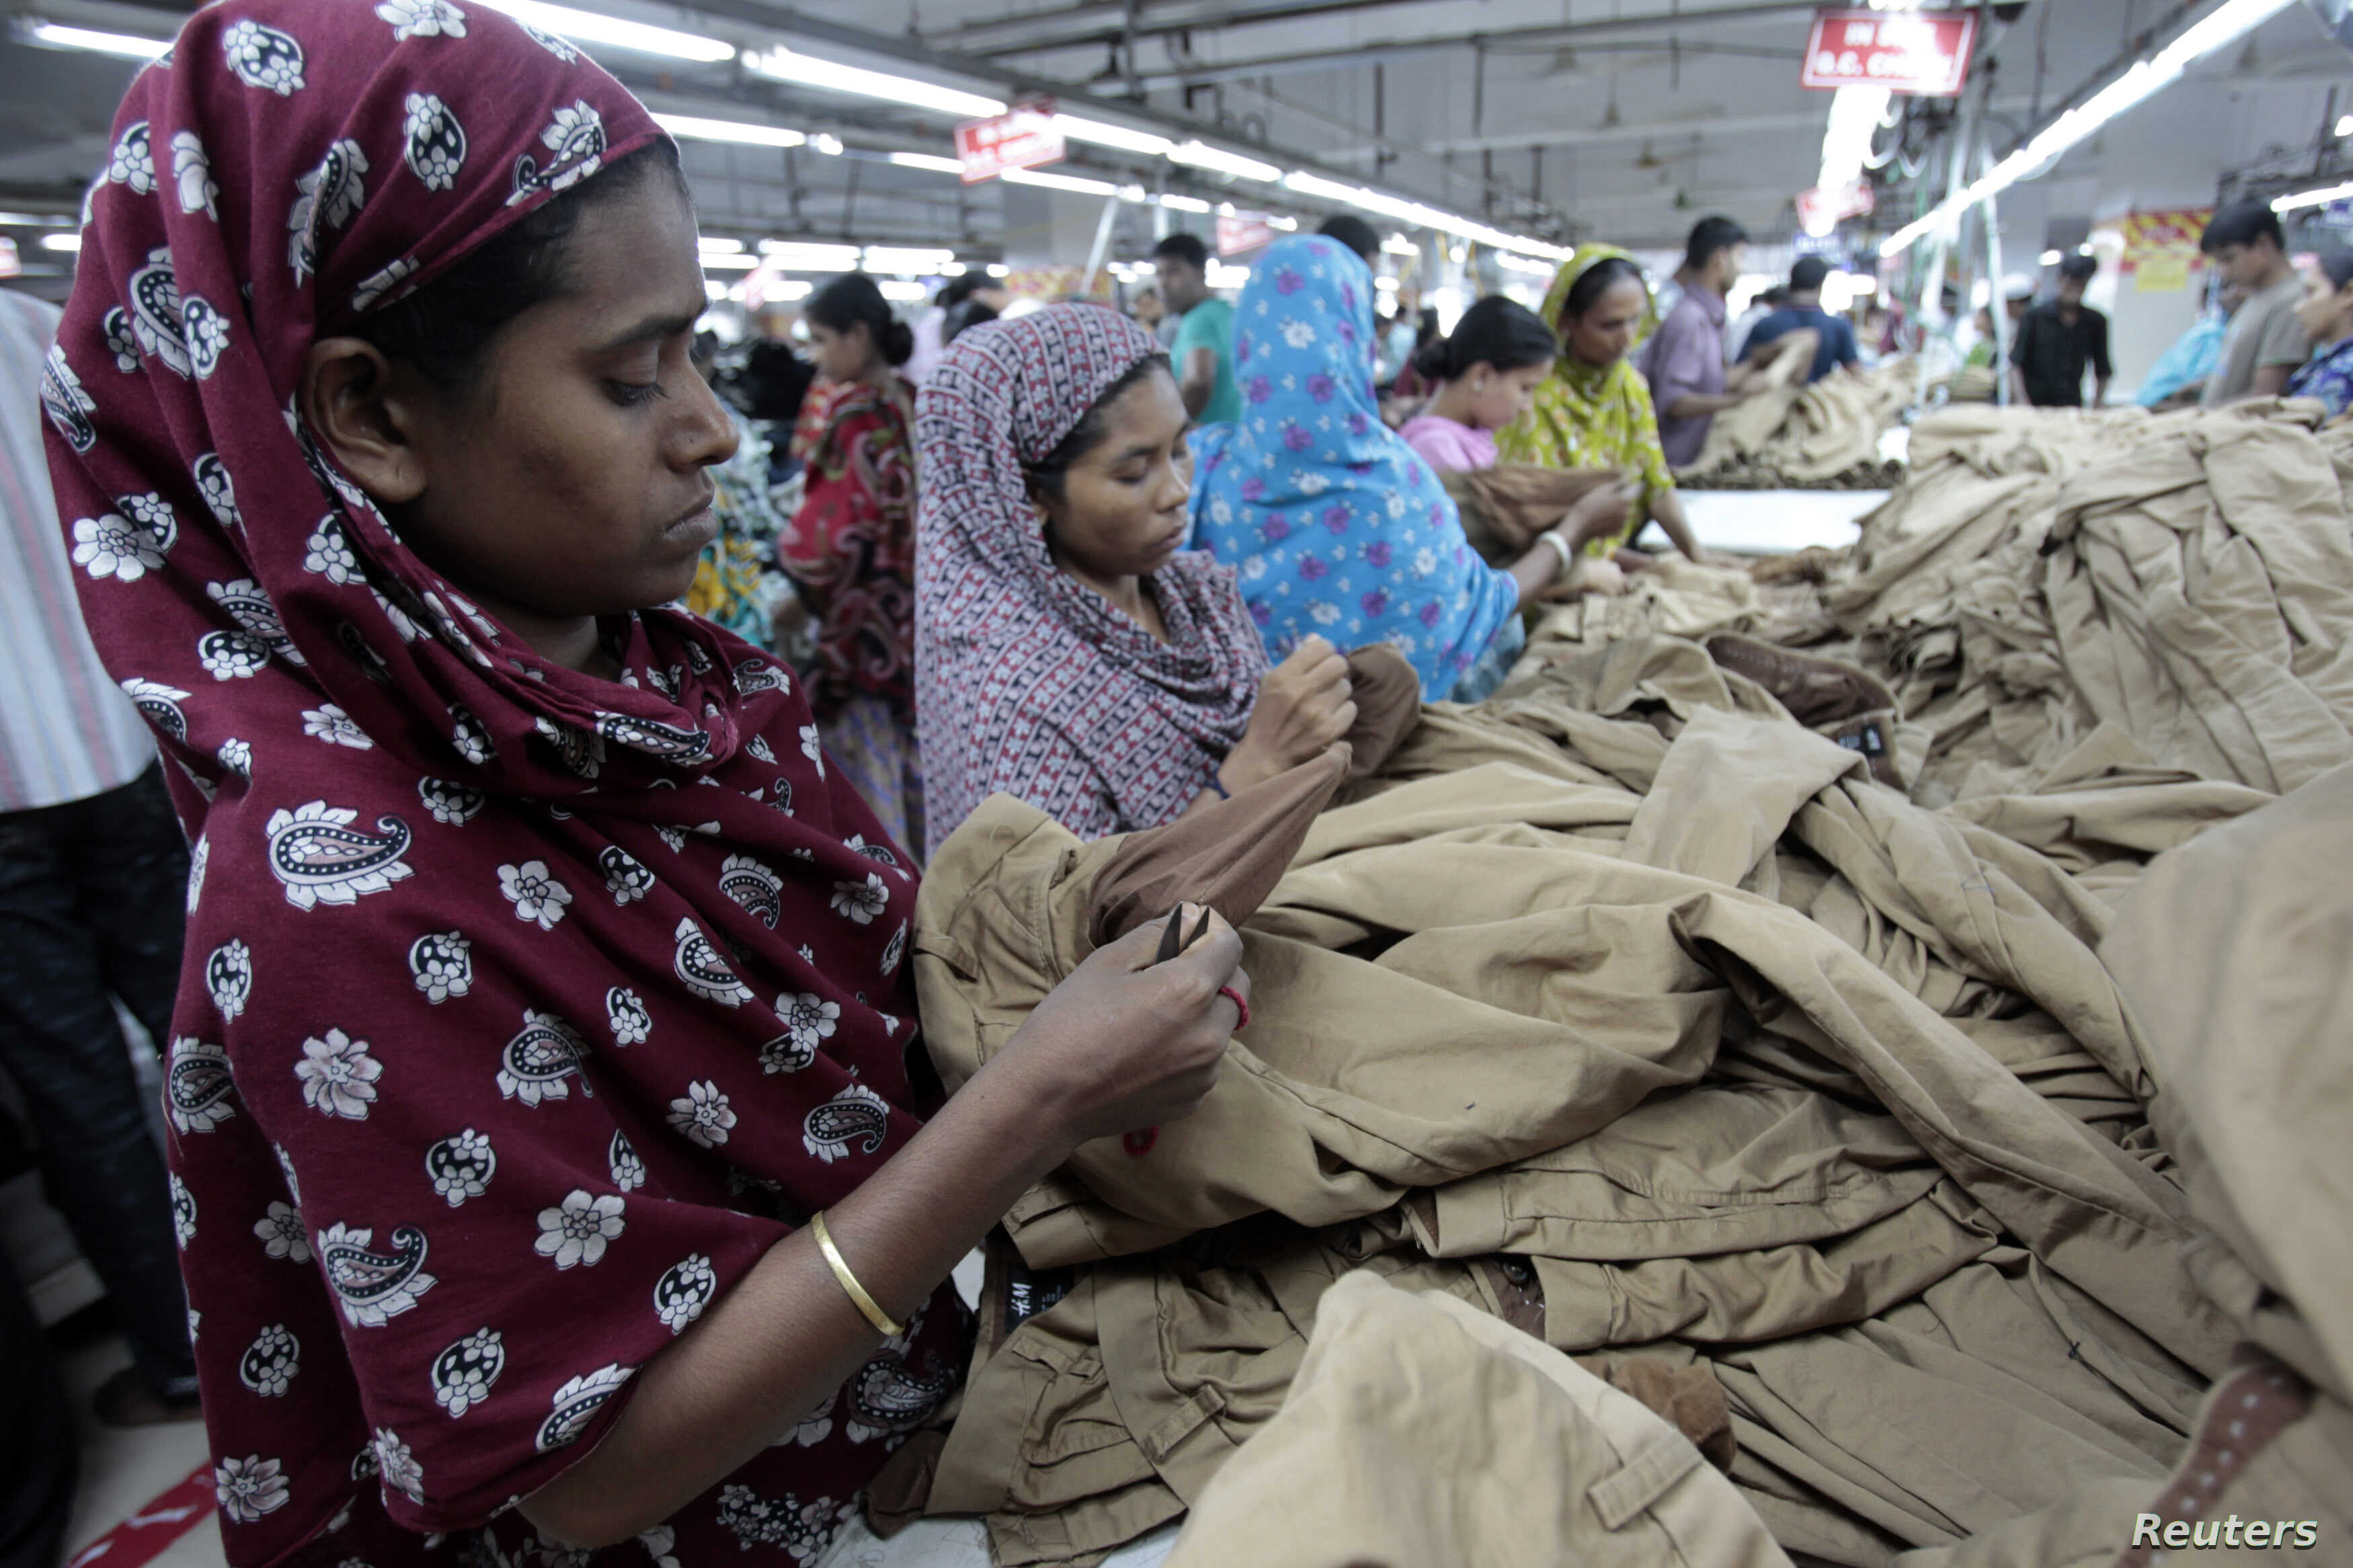 Thriving Bangladesh Garment Industry Under Scrutiny | Voice